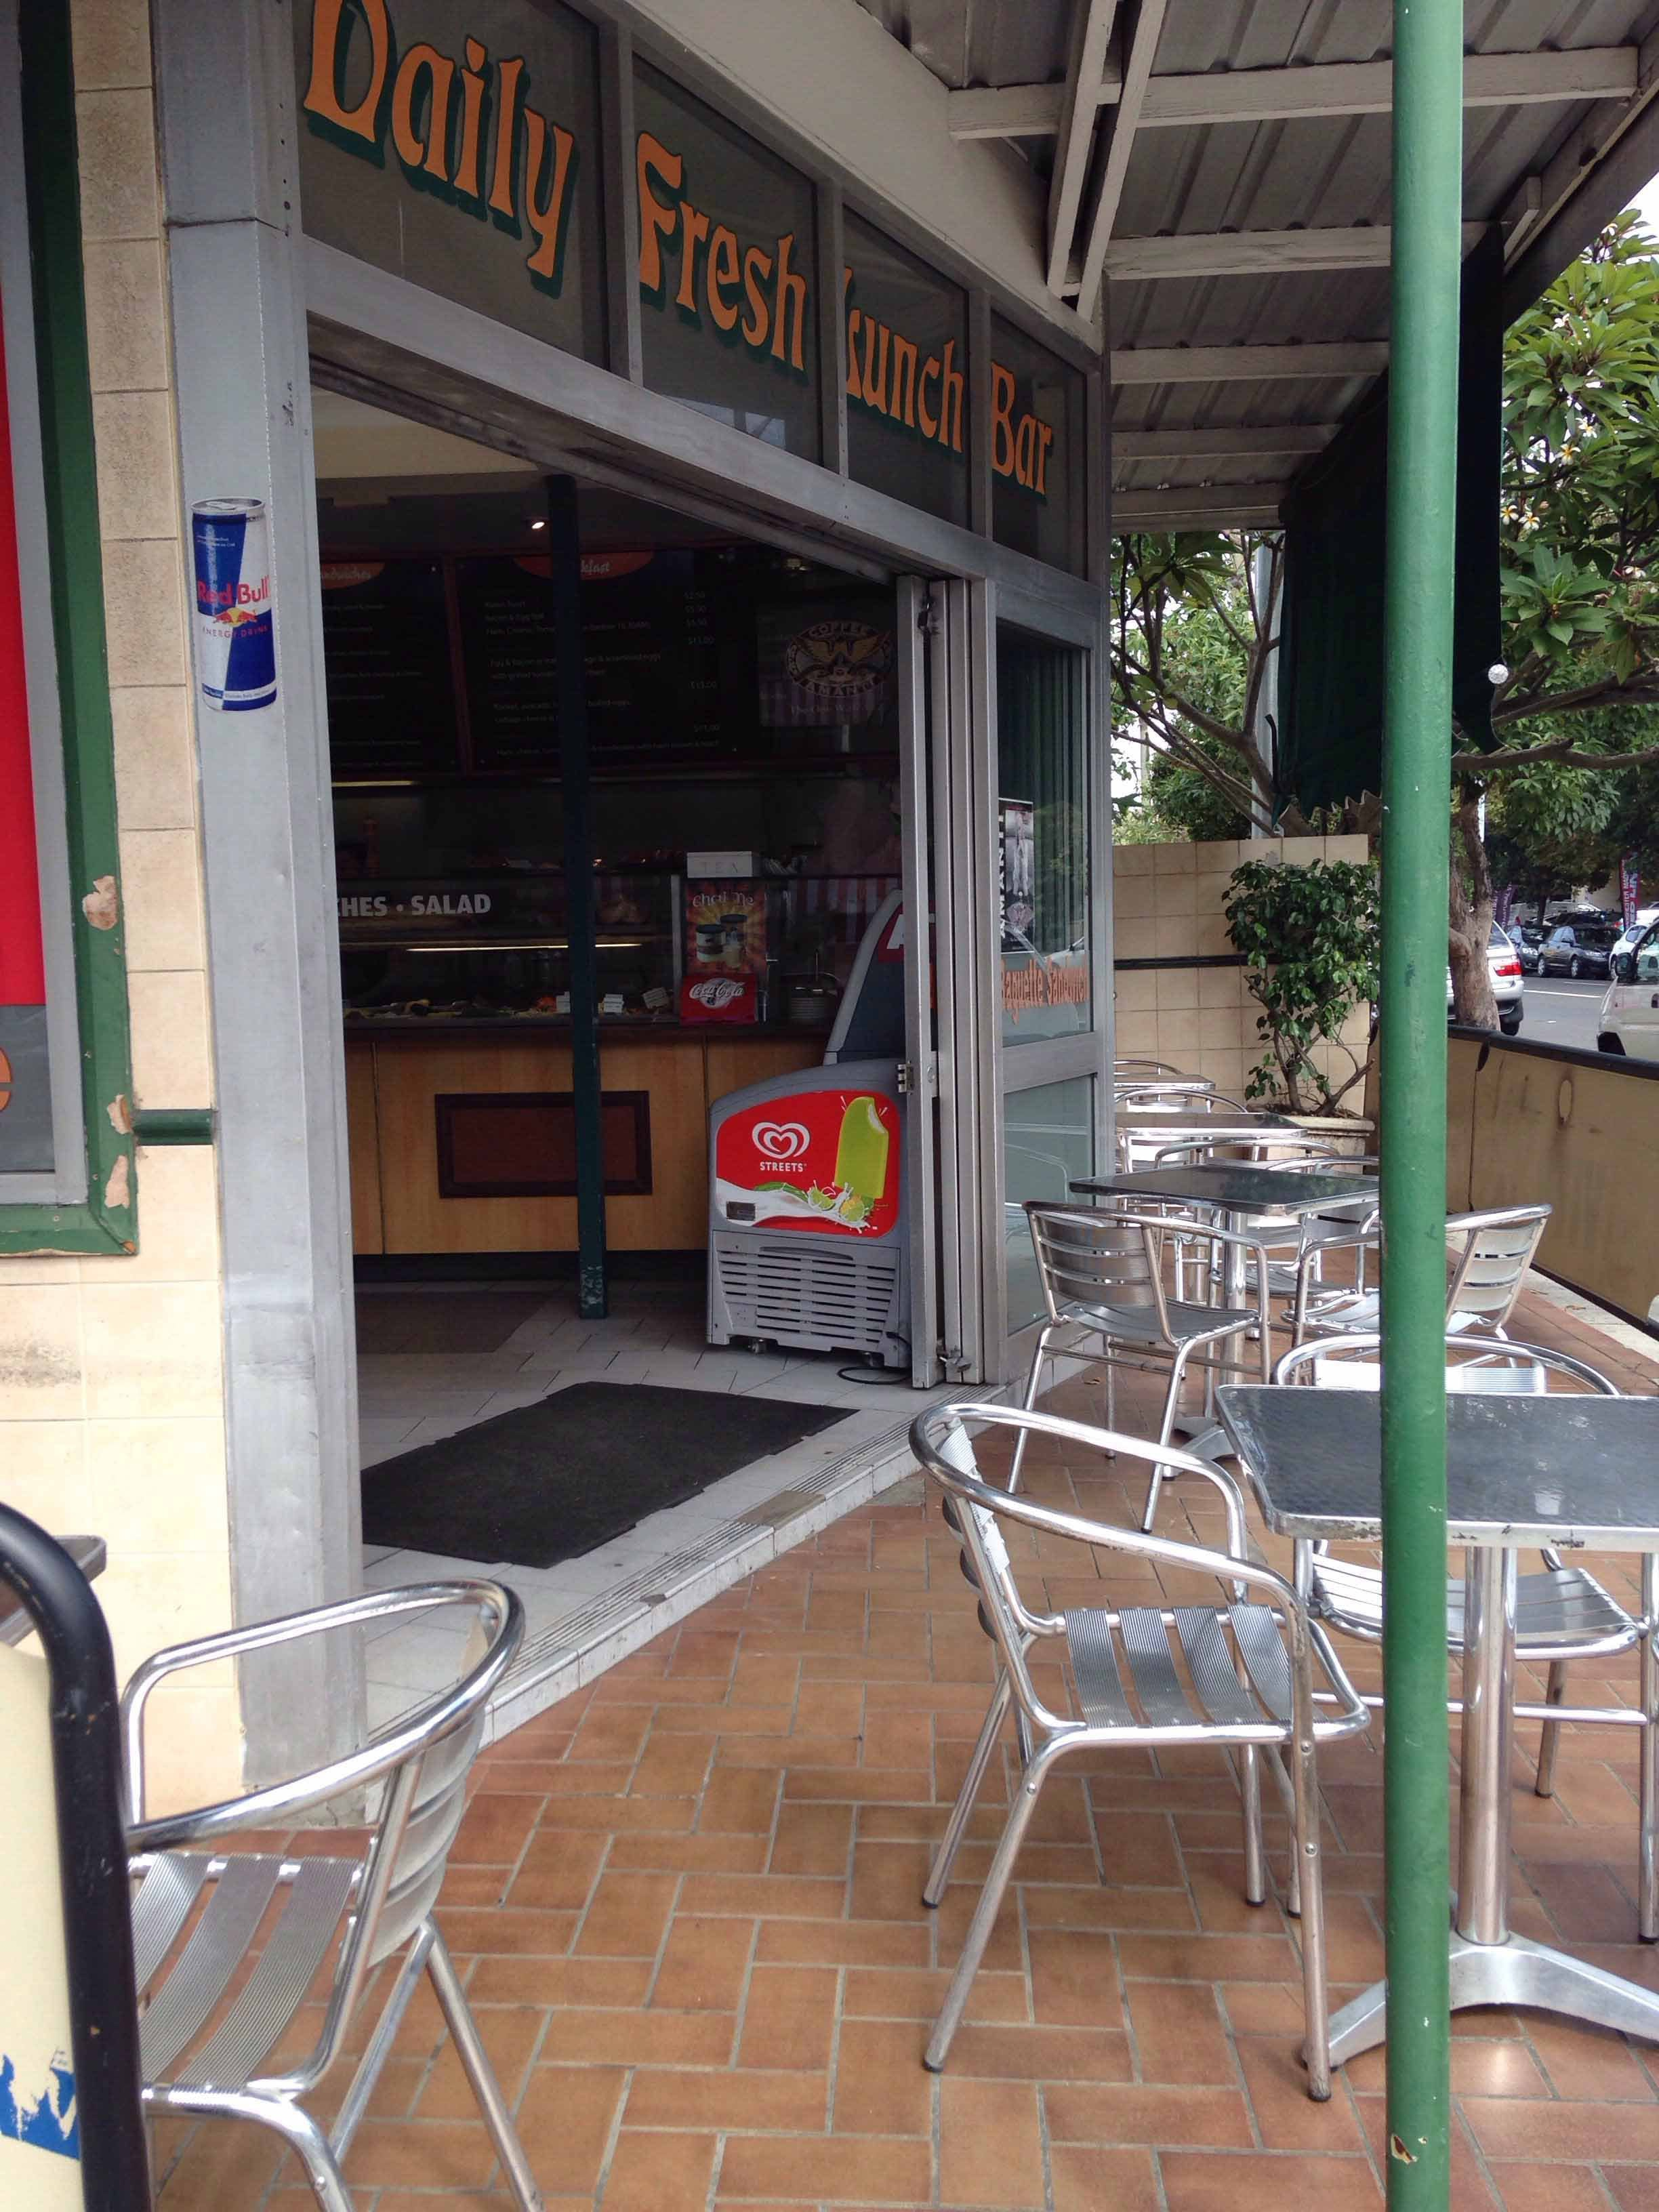 Daily Fresh Lunch Bar - Mount Gambier Accommodation